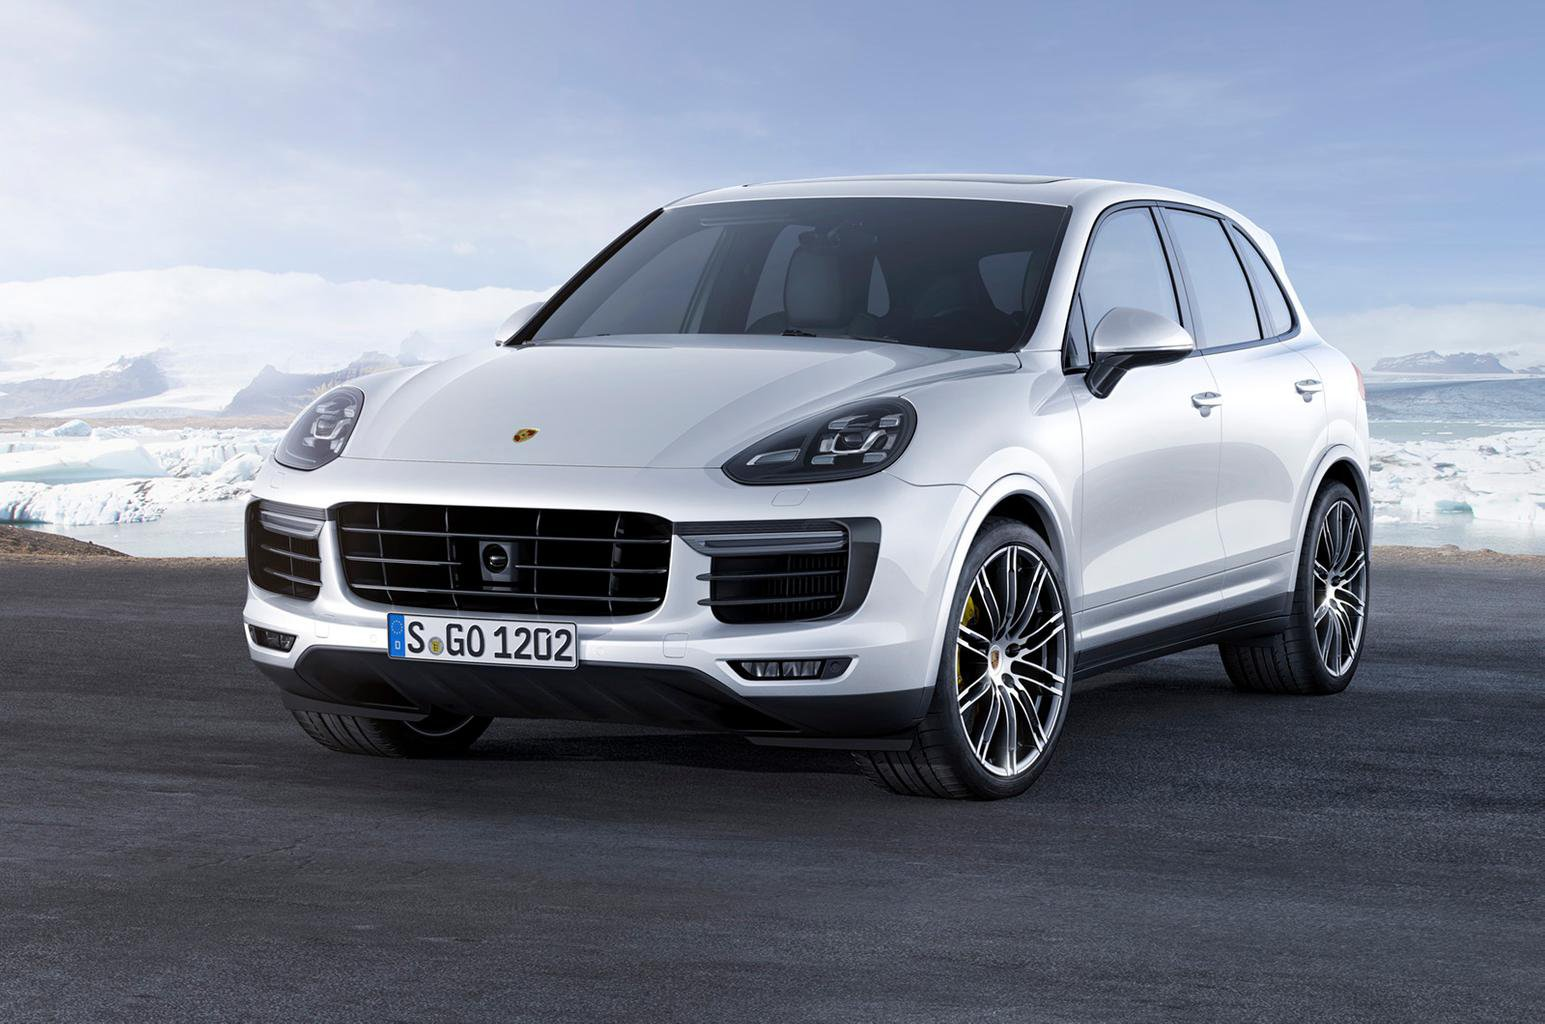 2015 Porsche Cayenne Turbo S - first pictures and details